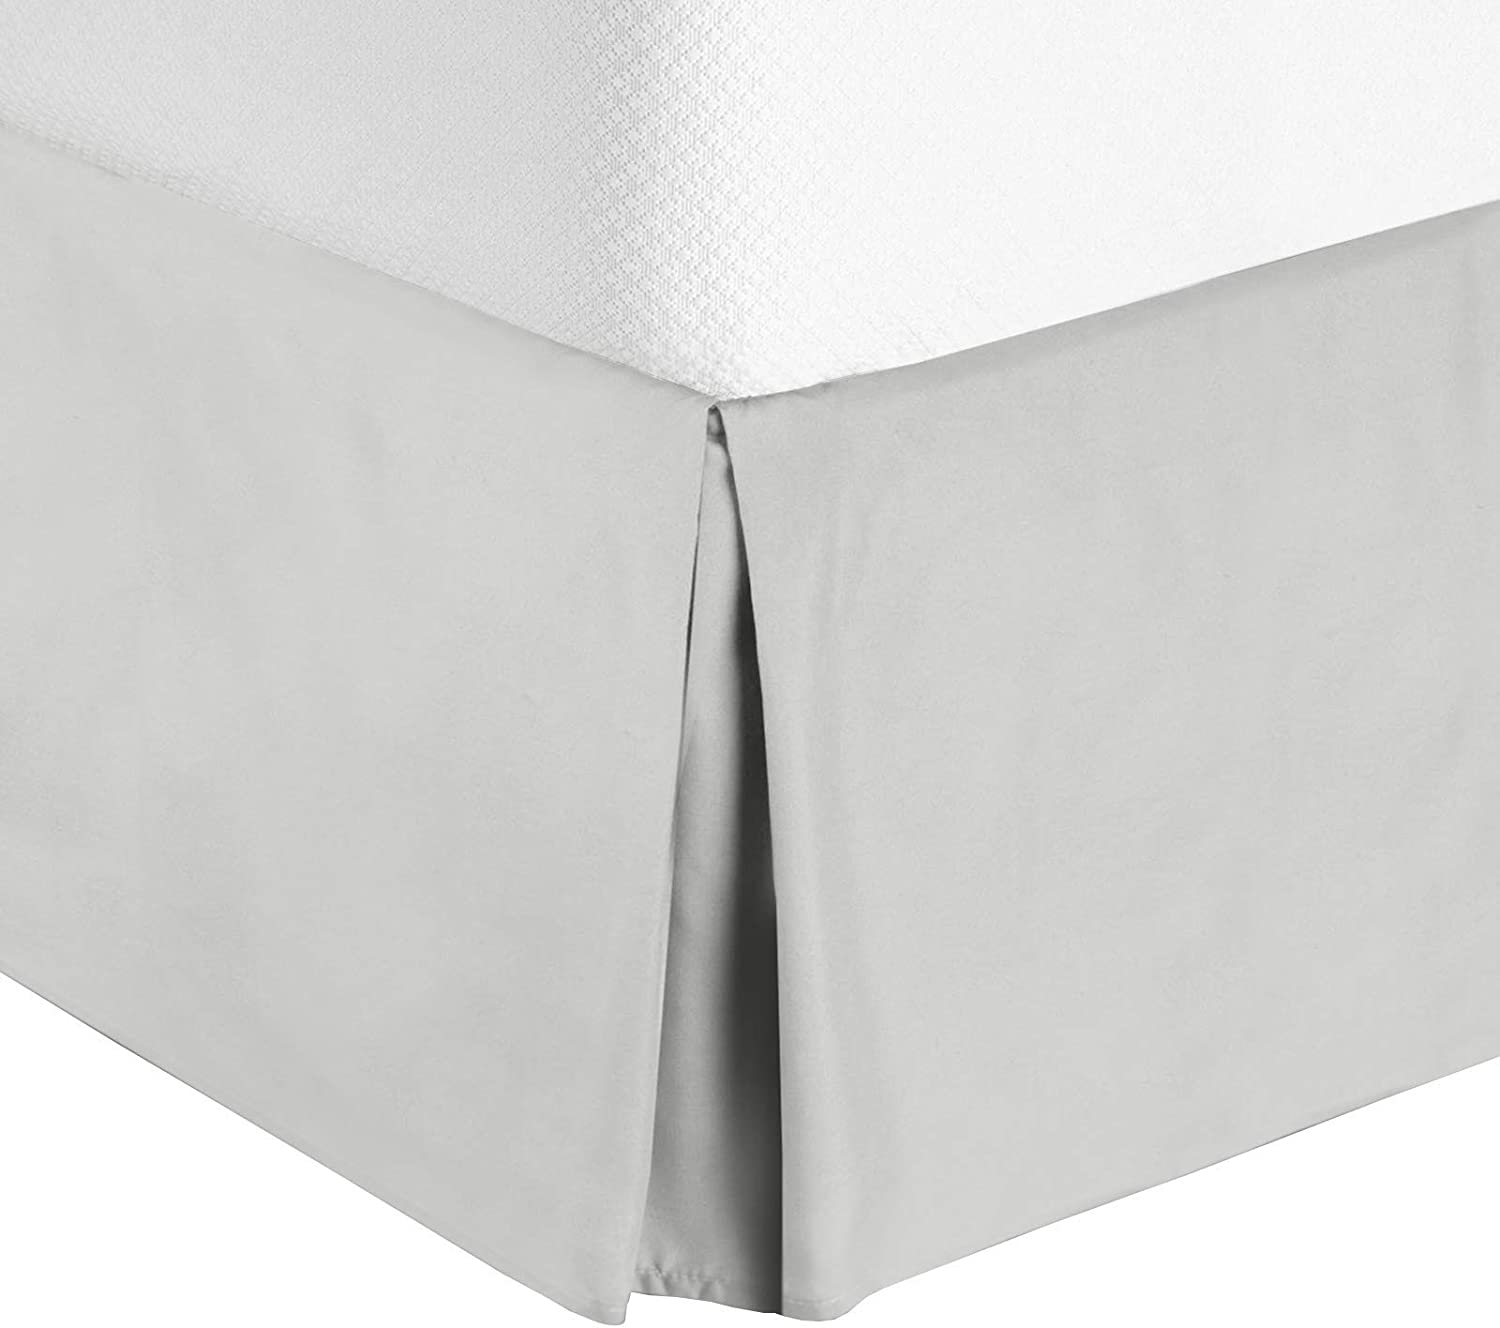 "Nestl Bedding Pleated Bed Skirt - Luxury Microfiber Dust Ruffle - Sleek Modern Bed Skirt - 14"" Tailored Drop, King, Silver"